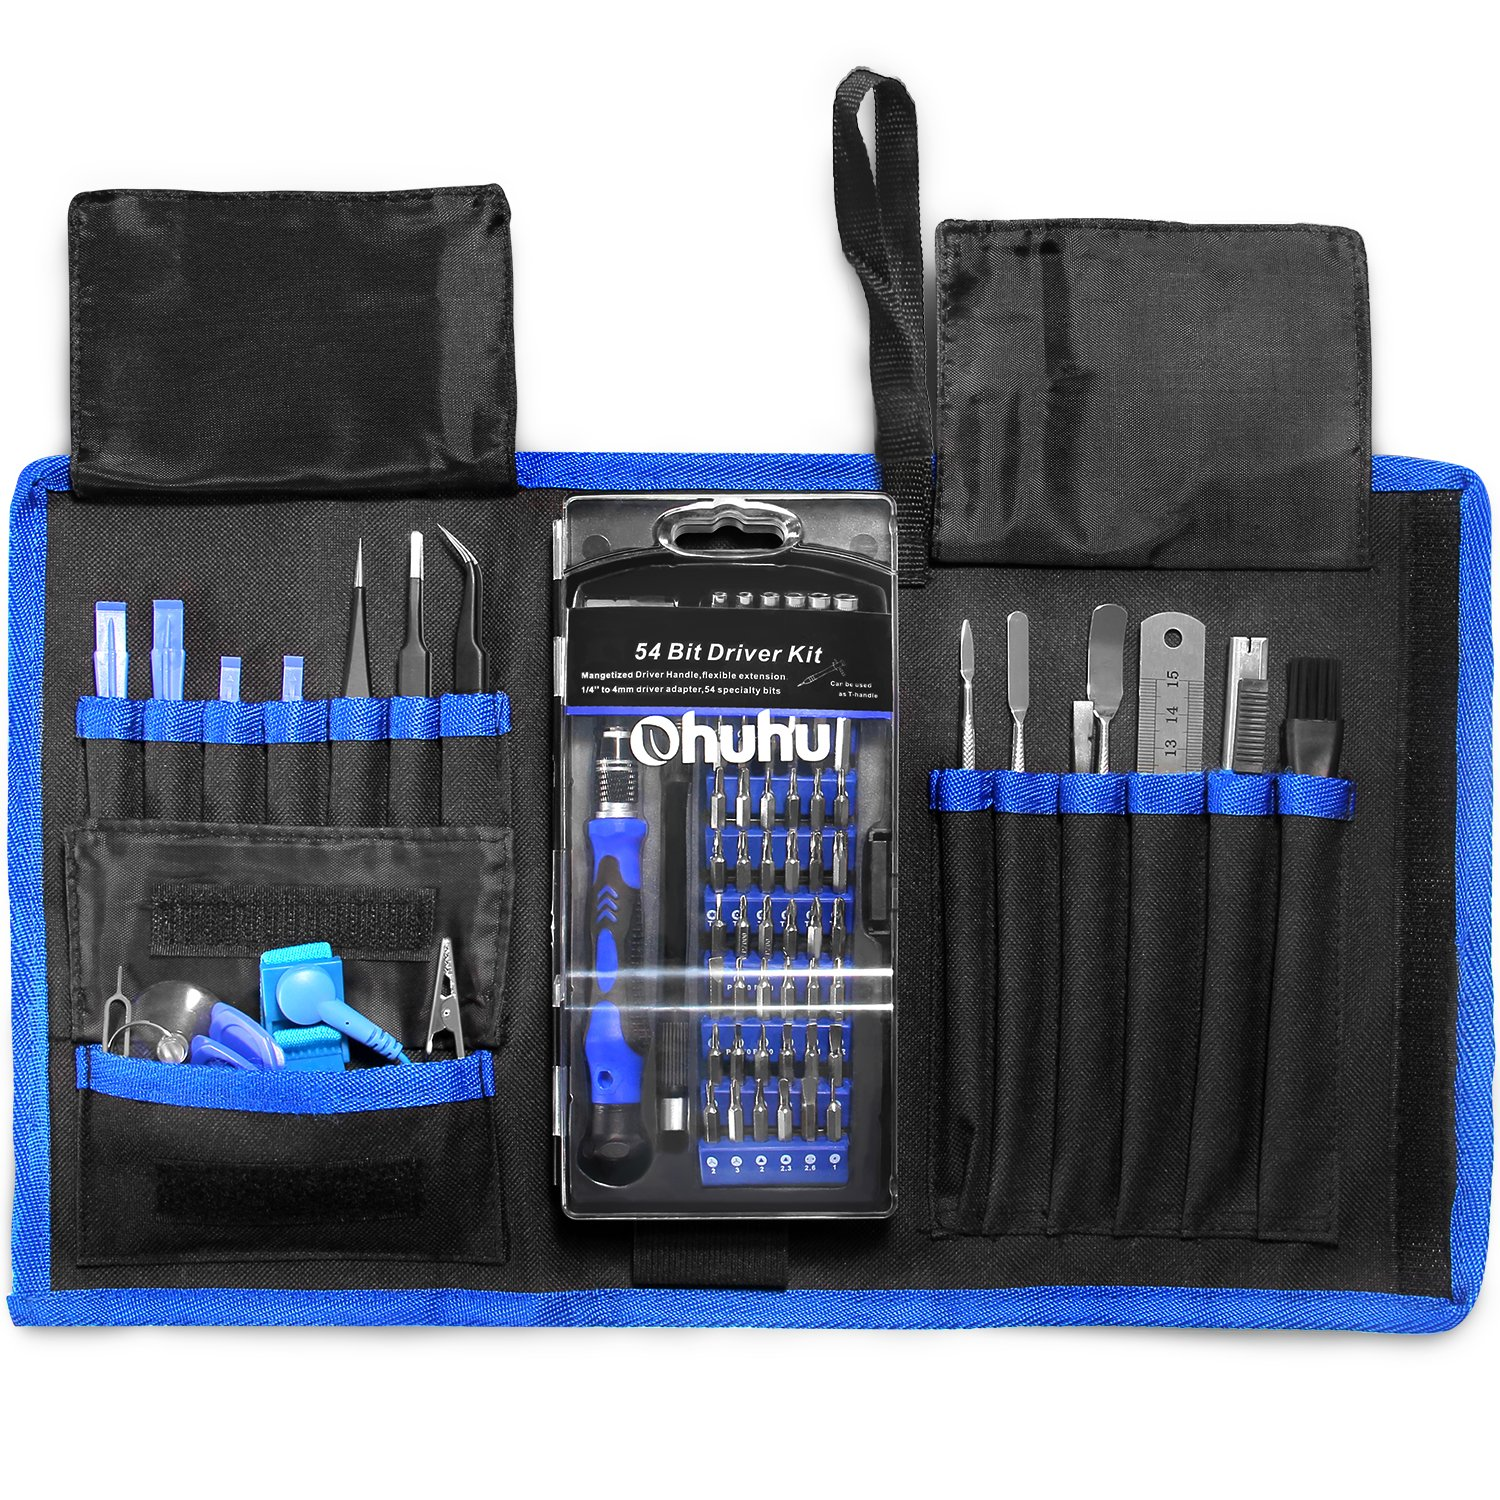 Repair Tools Kit, Ohuhu 77-IN-1 Screwdriver Set, Professional Precision Magnetic Driver Kit with Portable Bag, Screwdriver Bits with Flexible Shaft for iPhone X/ 8/ 8 Plus/ Mobile phone/ Tablet